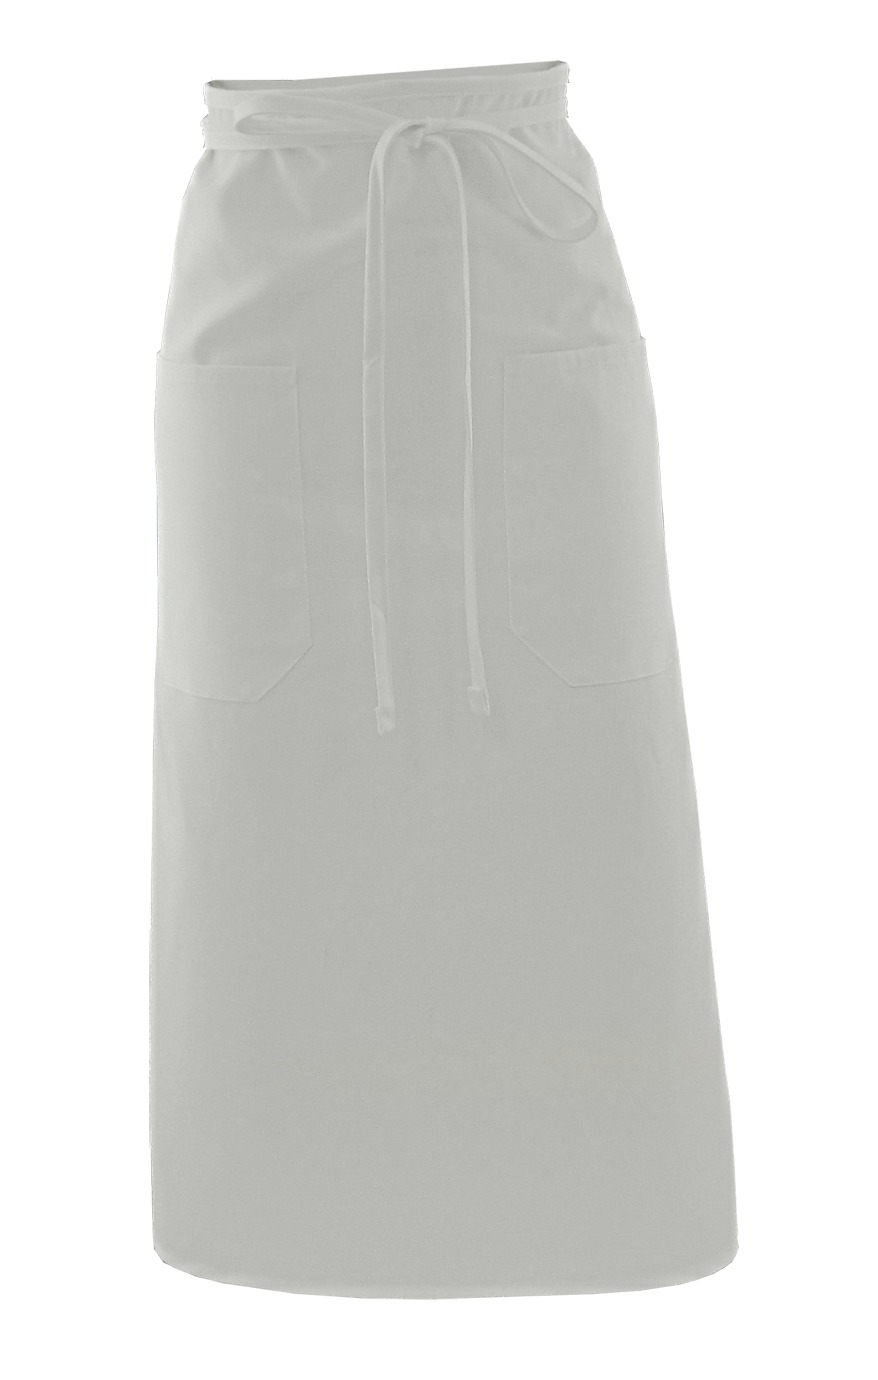 BISTRO APRON WITH TWO POCKETS - BISTRO APRON WITH TWO POCKETS